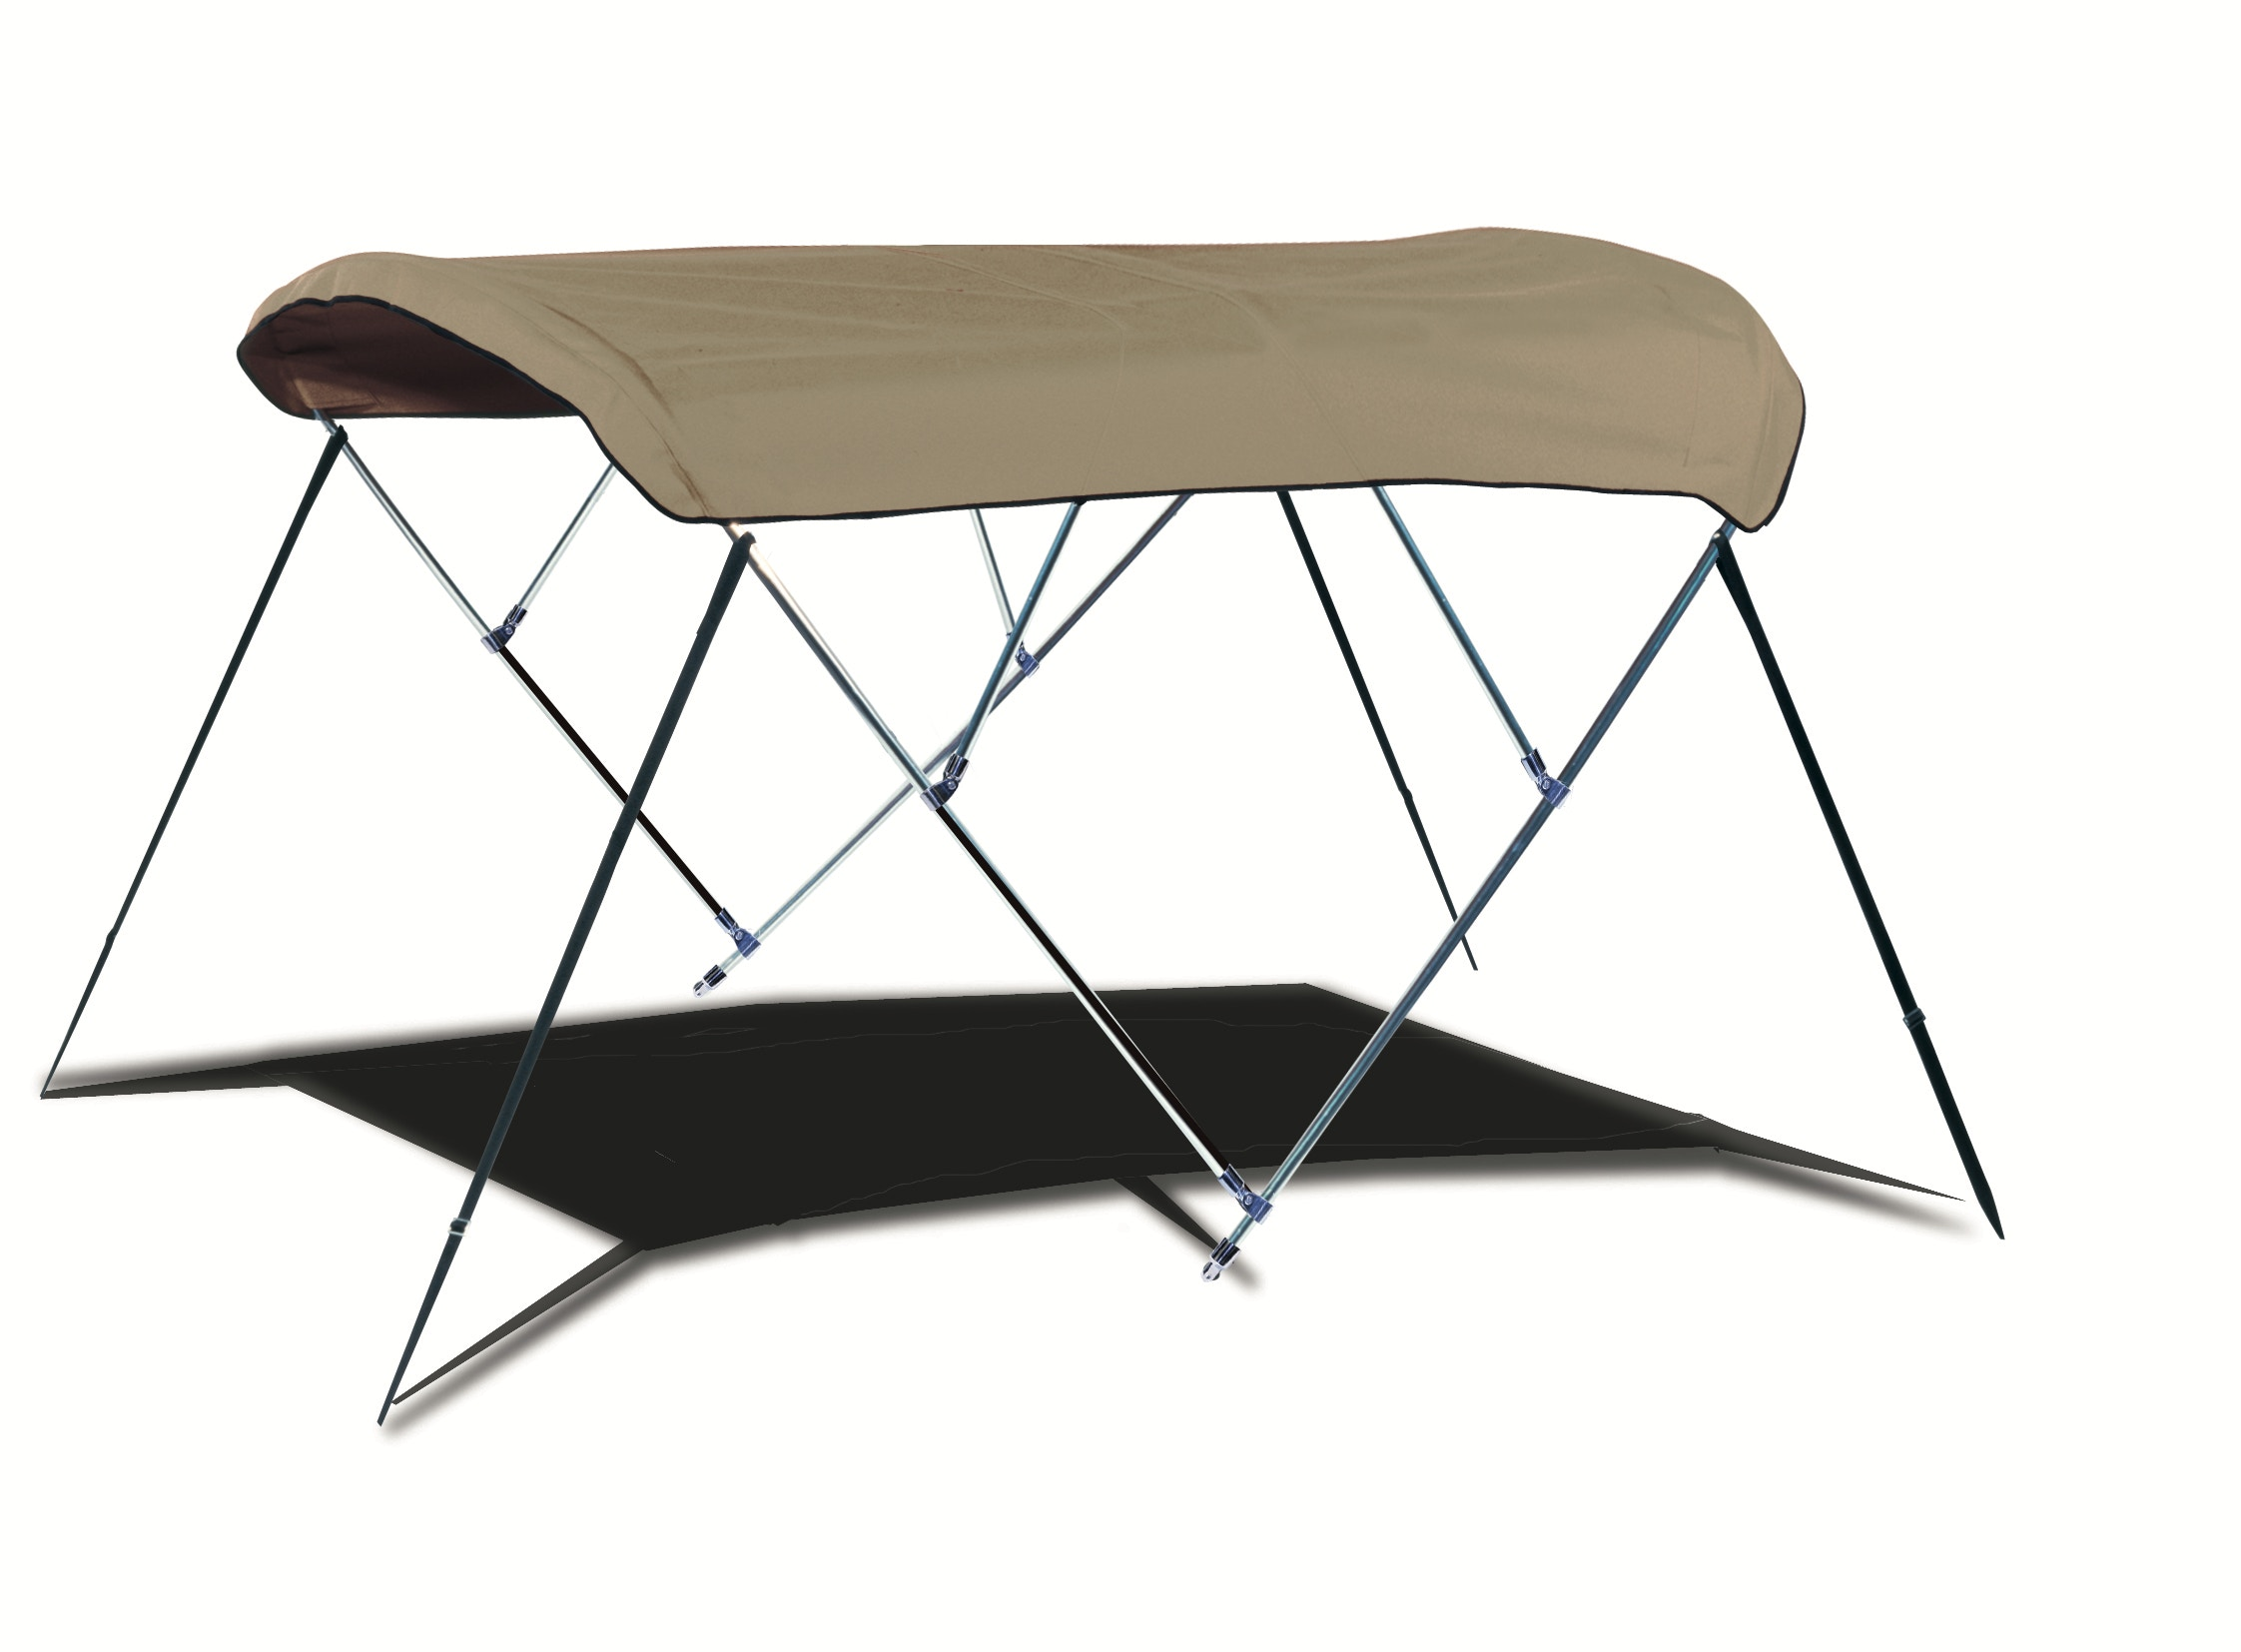 4-bow Round Tube Bimini Top in Sunbrella Linen